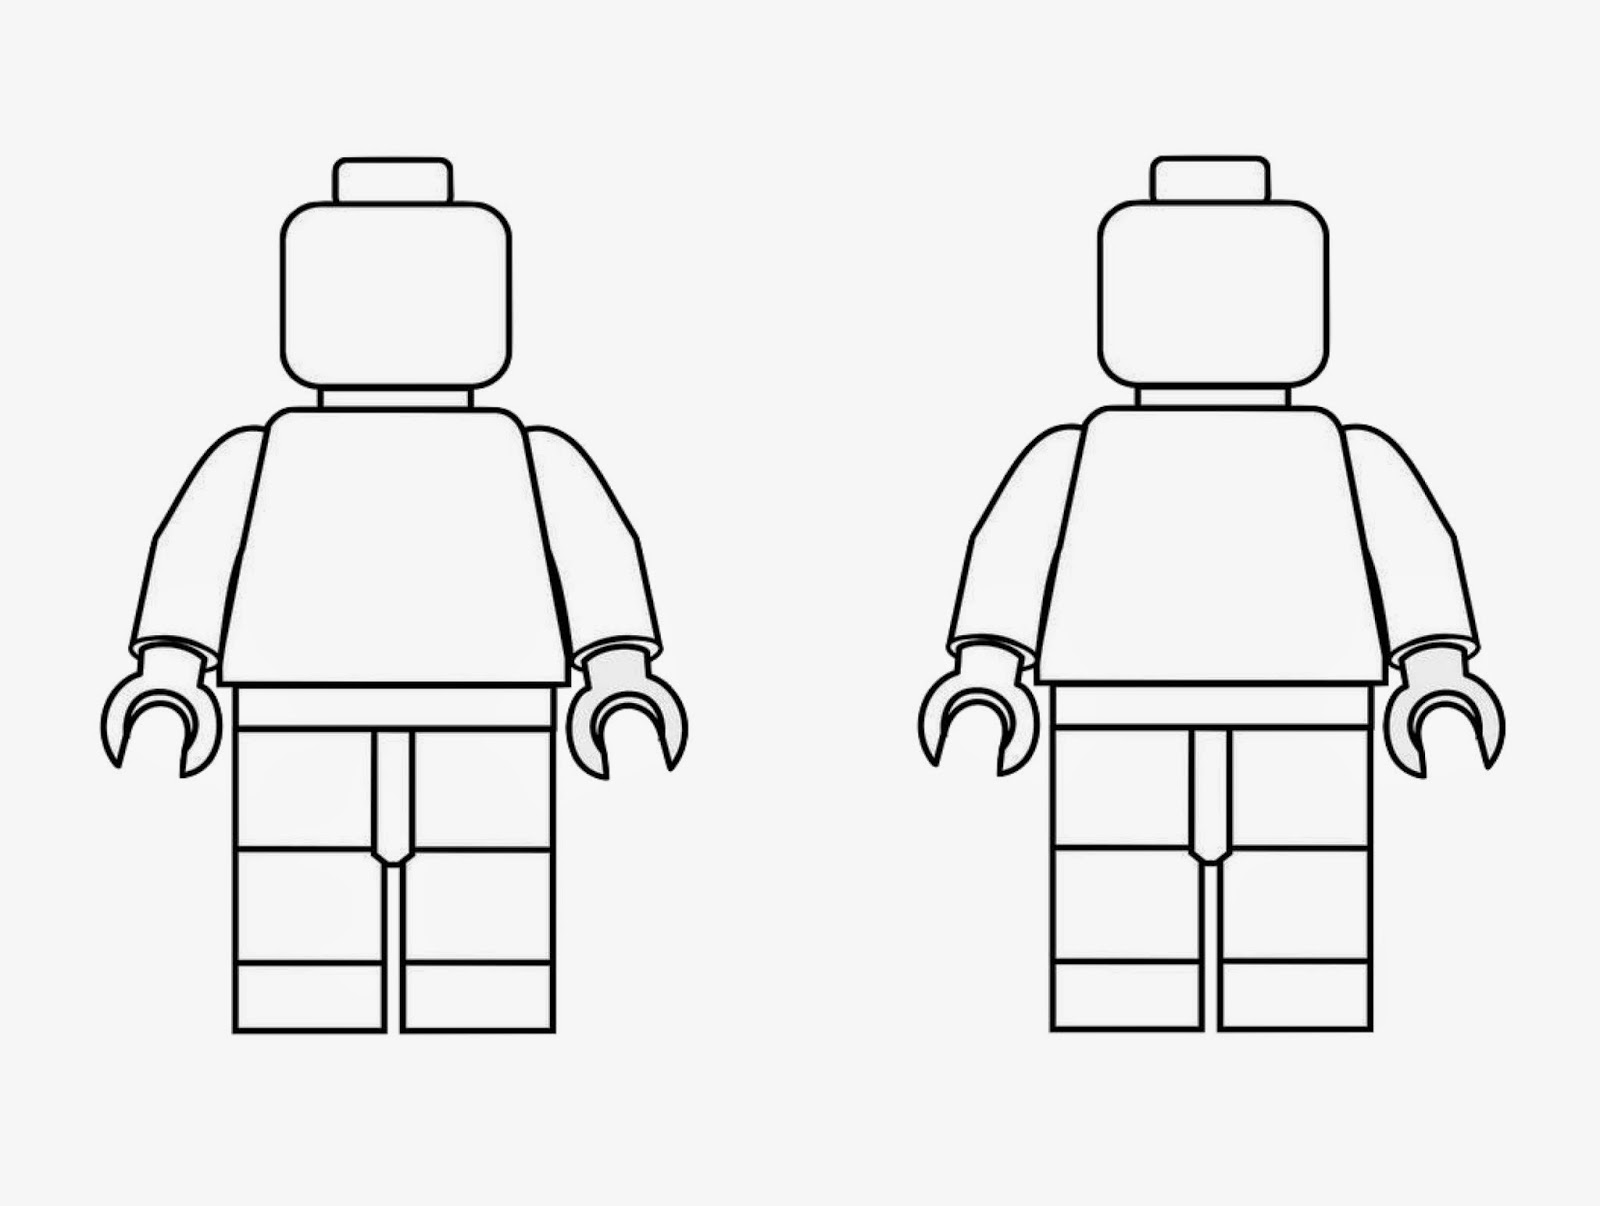 lego people coloring pages lego people coloring pages at getcoloringscom free lego coloring people pages